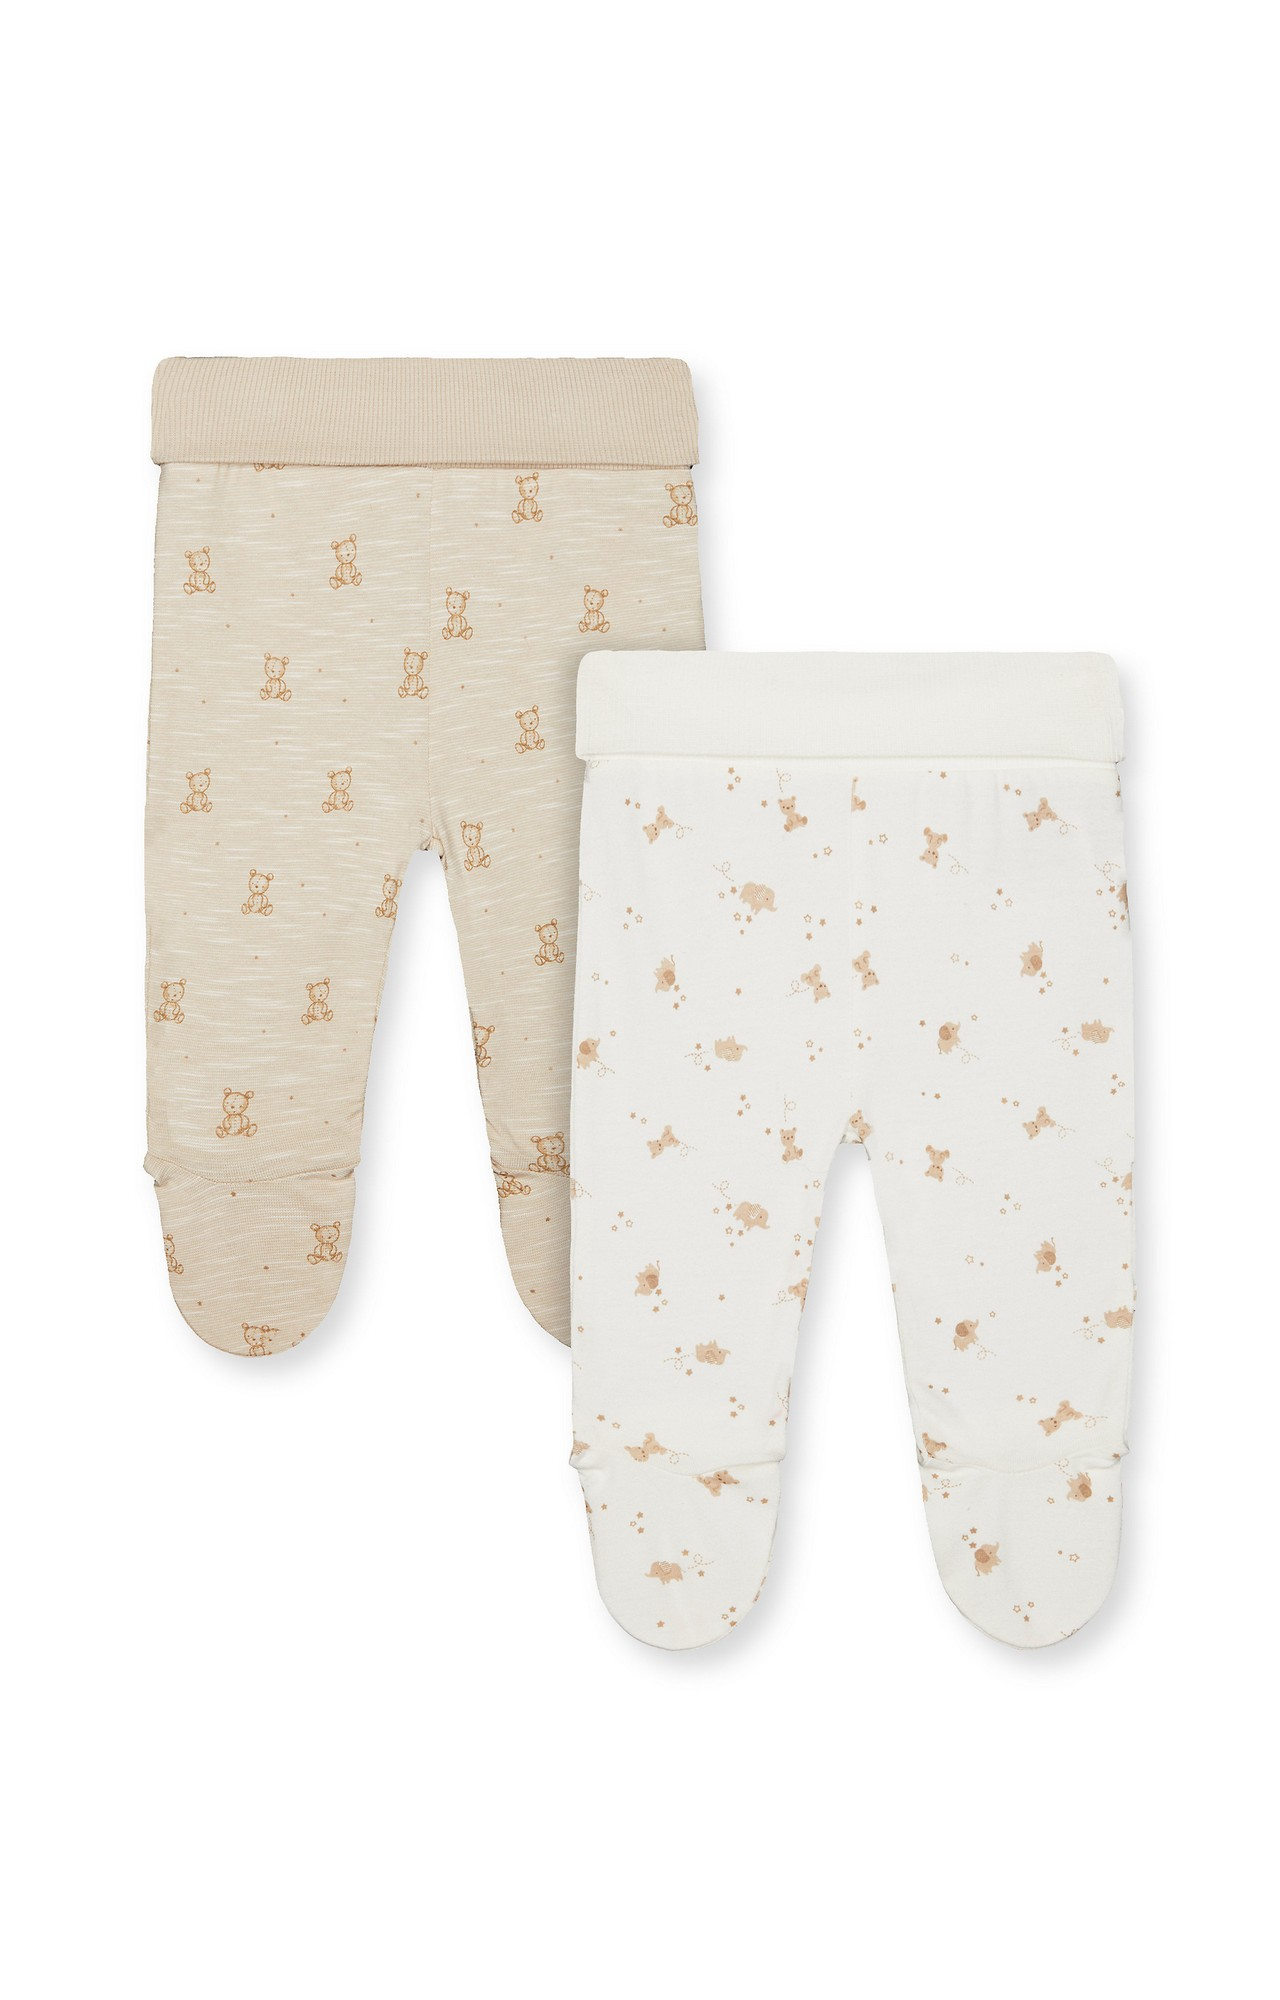 Mothercare | Oatmeal Printed Casual Pants - Pack of 2